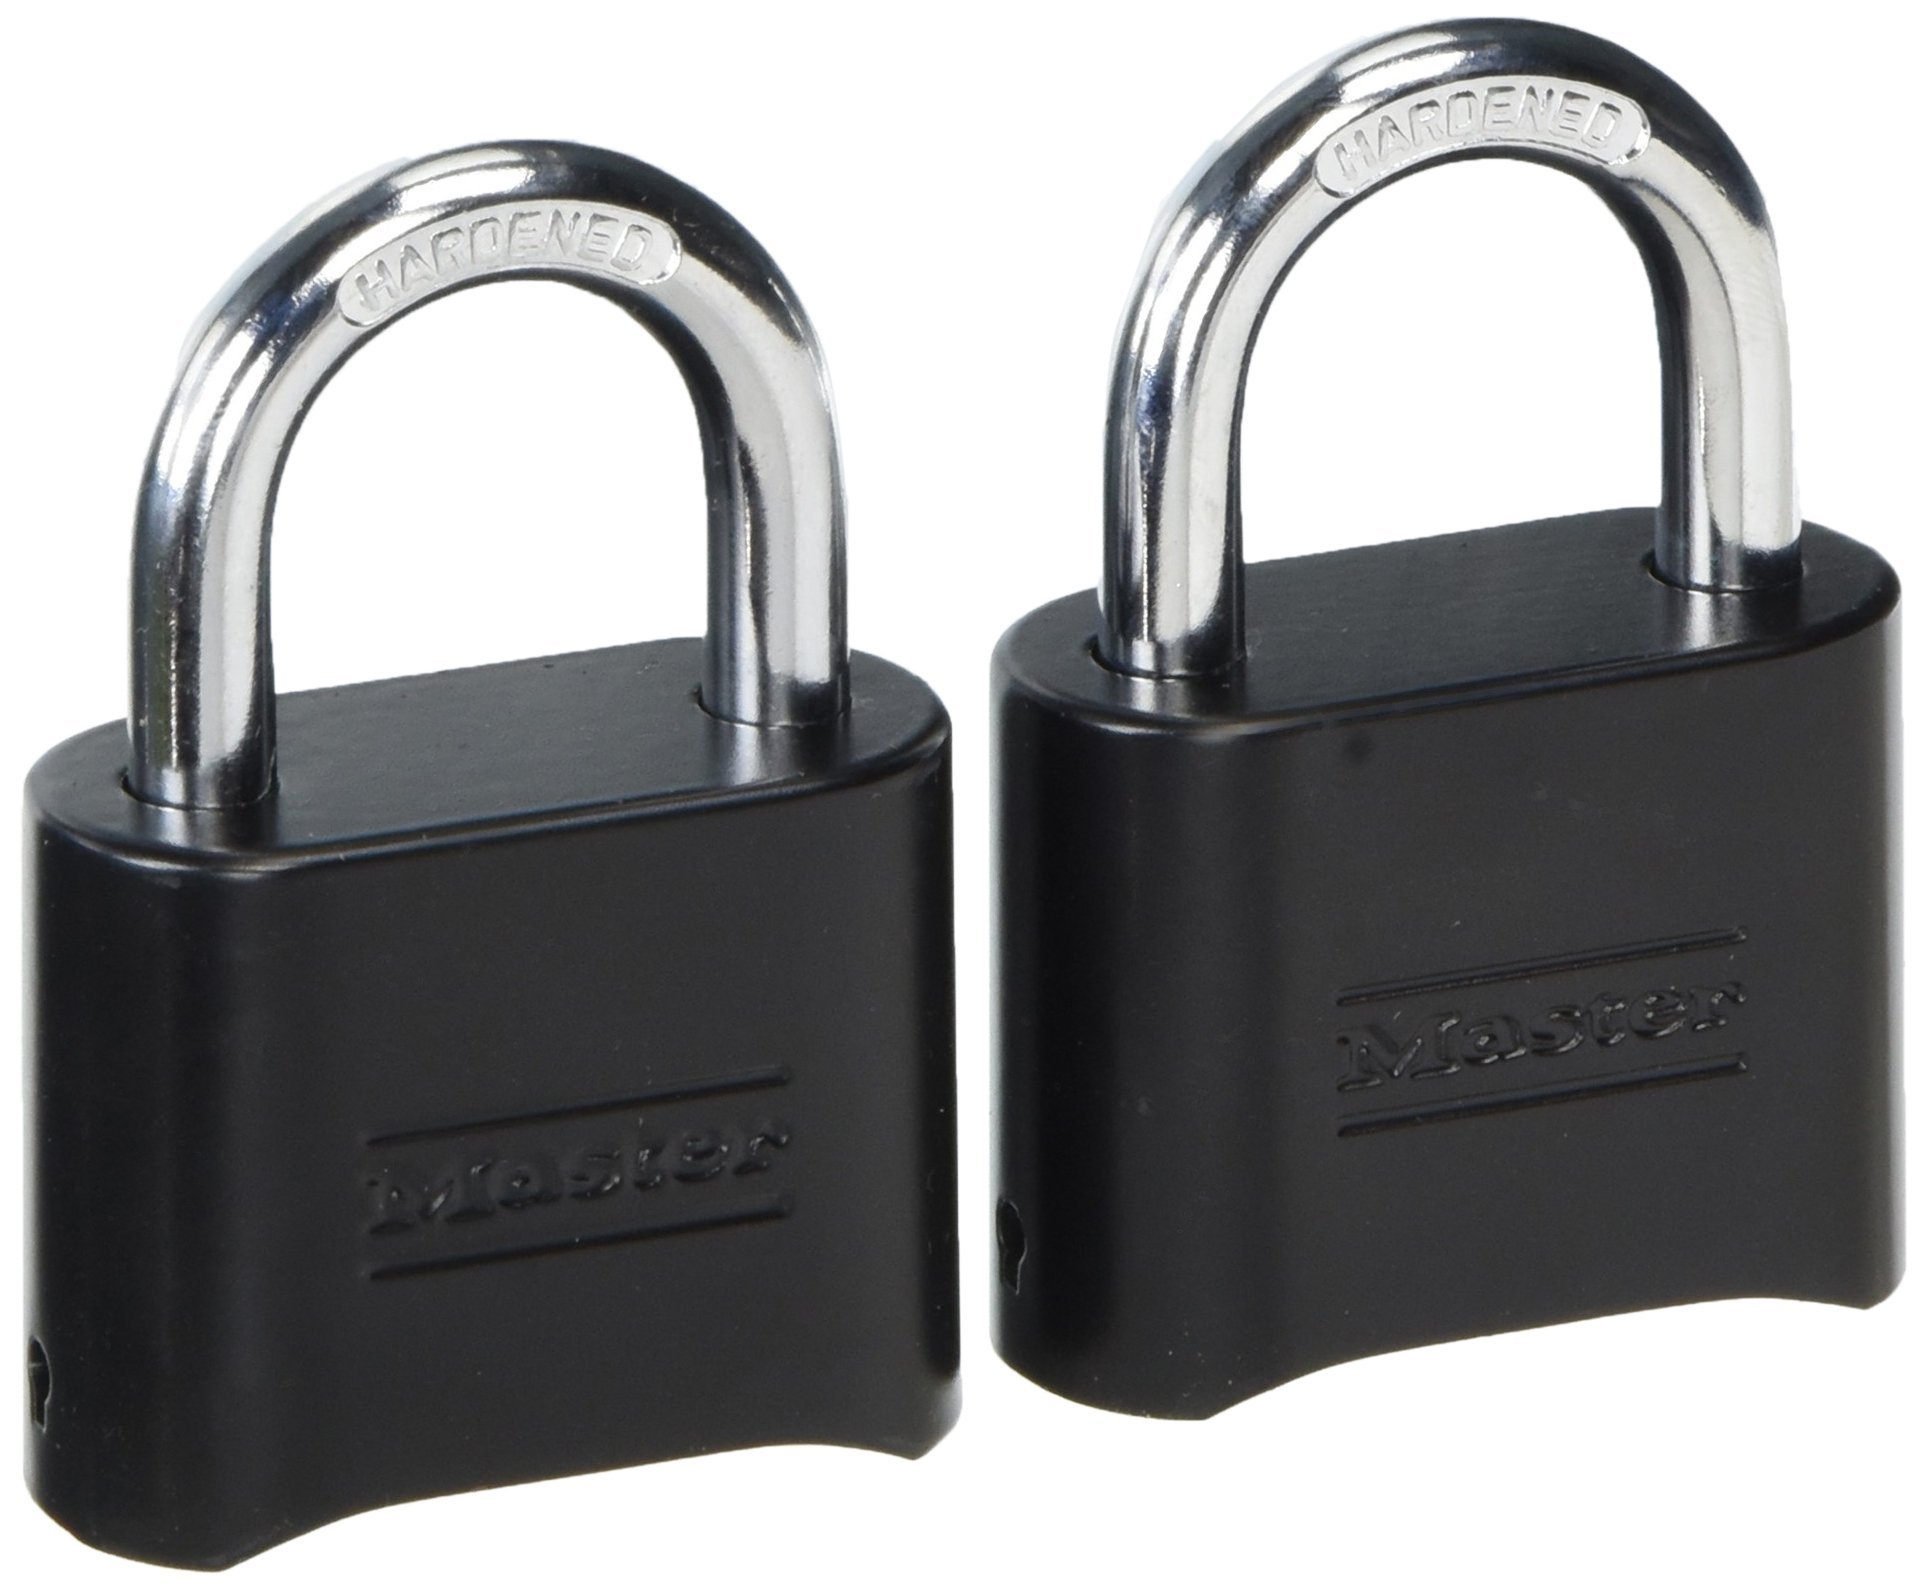 Master Lock 178D Set-Your-Own Combination Padlock, Die-Cast, Black (Pack of 2) by Master Lock